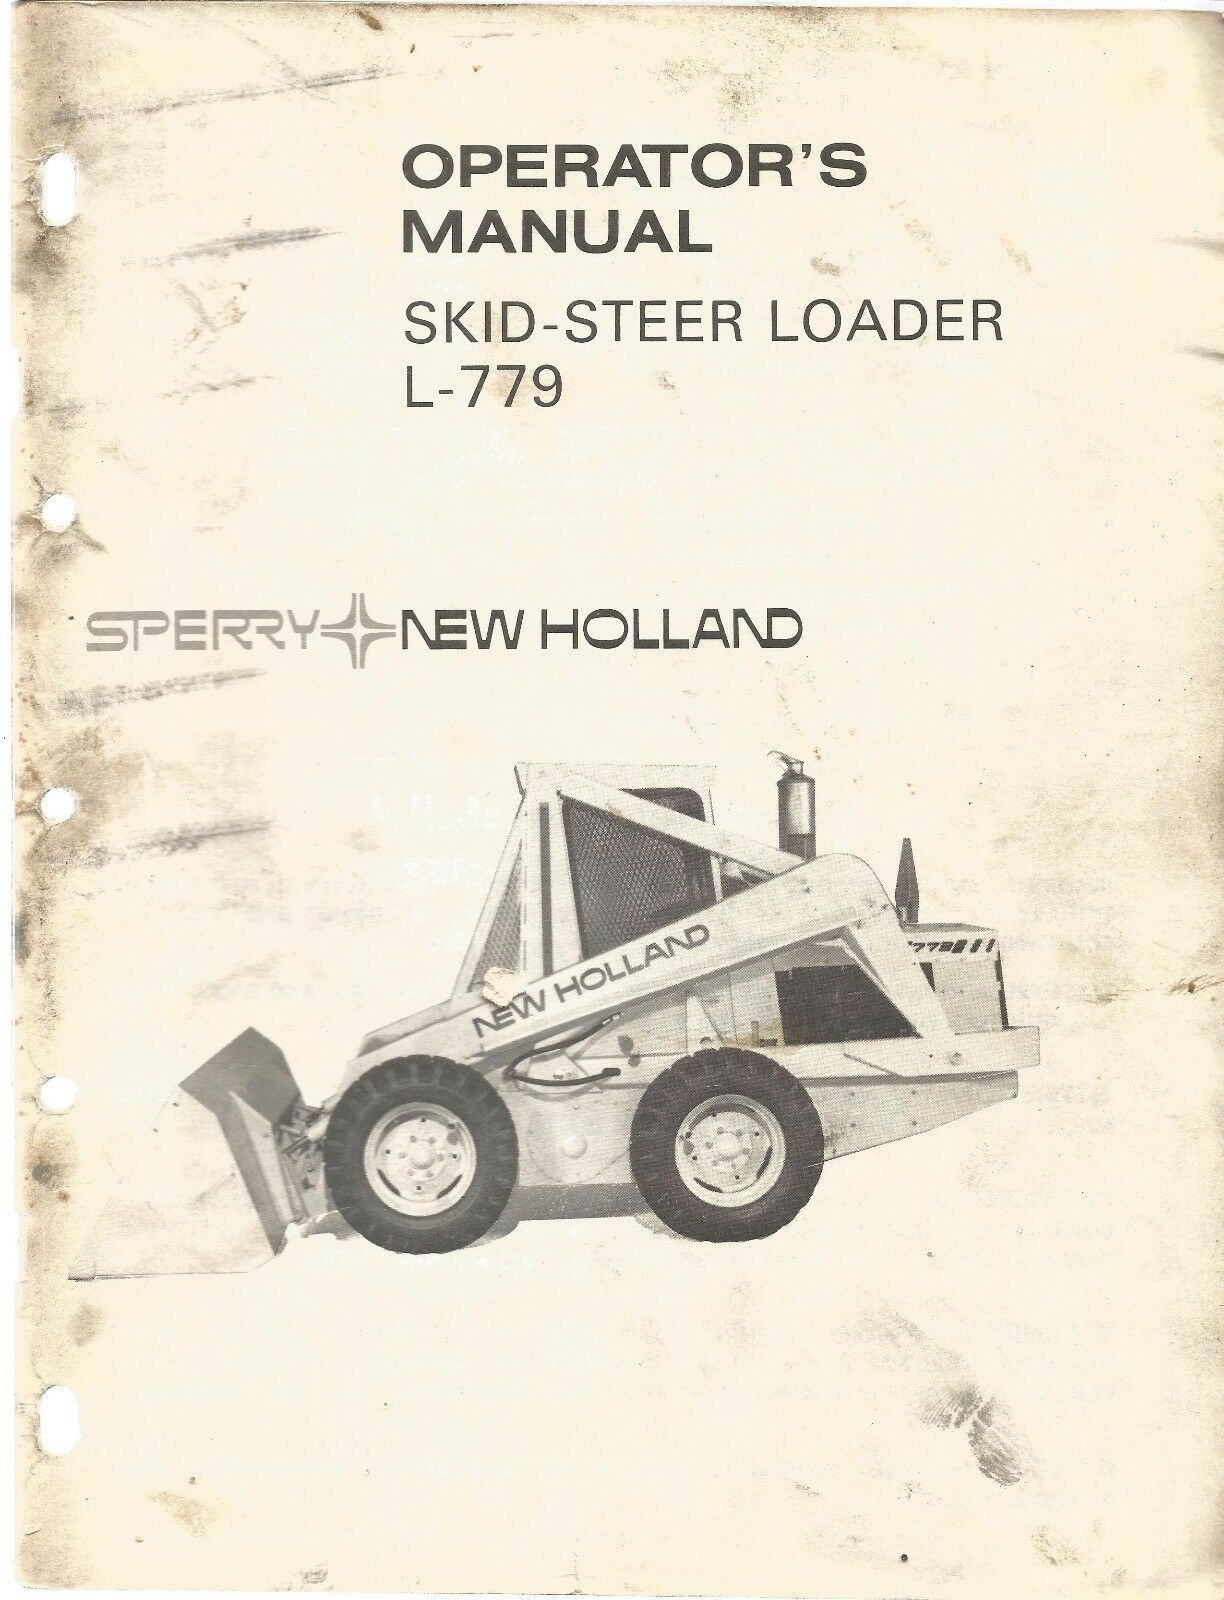 New Holland L-779 Loader Operator's Manual 1 of 1Only 1 available ...